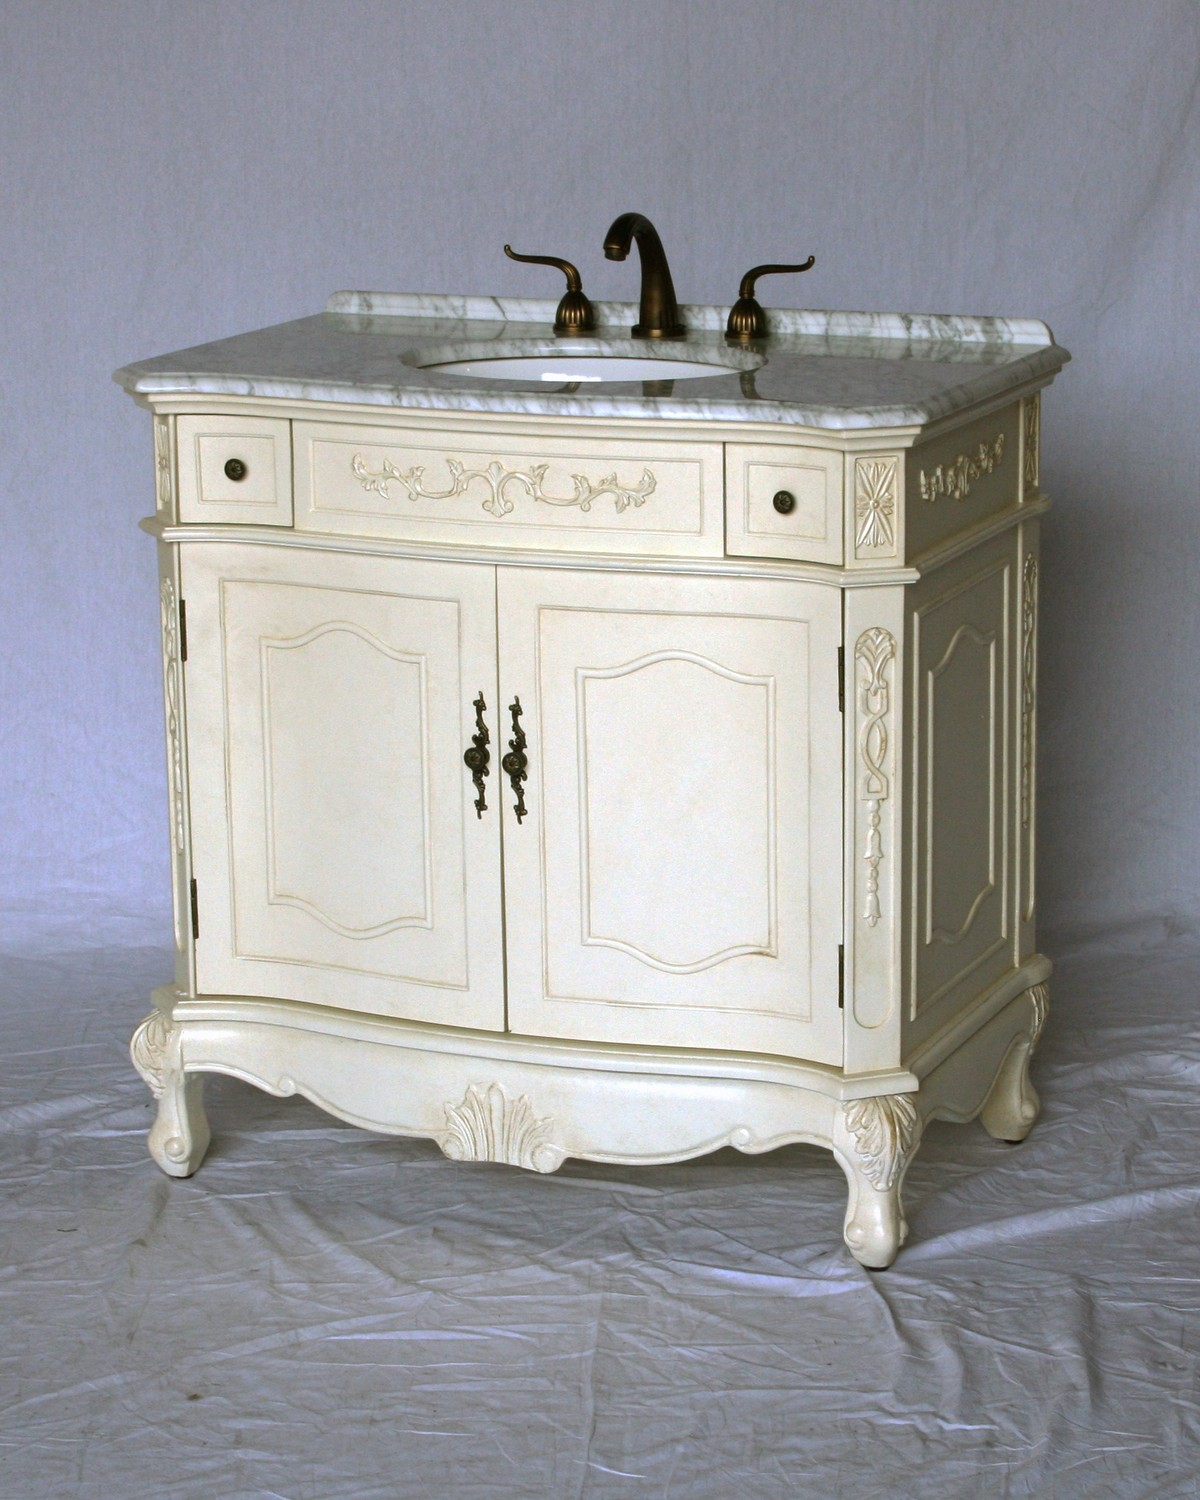 "36"" Adelina Antique Style Single Sink Bathroom Vanity in Antique White Finish with White Italian Carrara Marble Countertop"